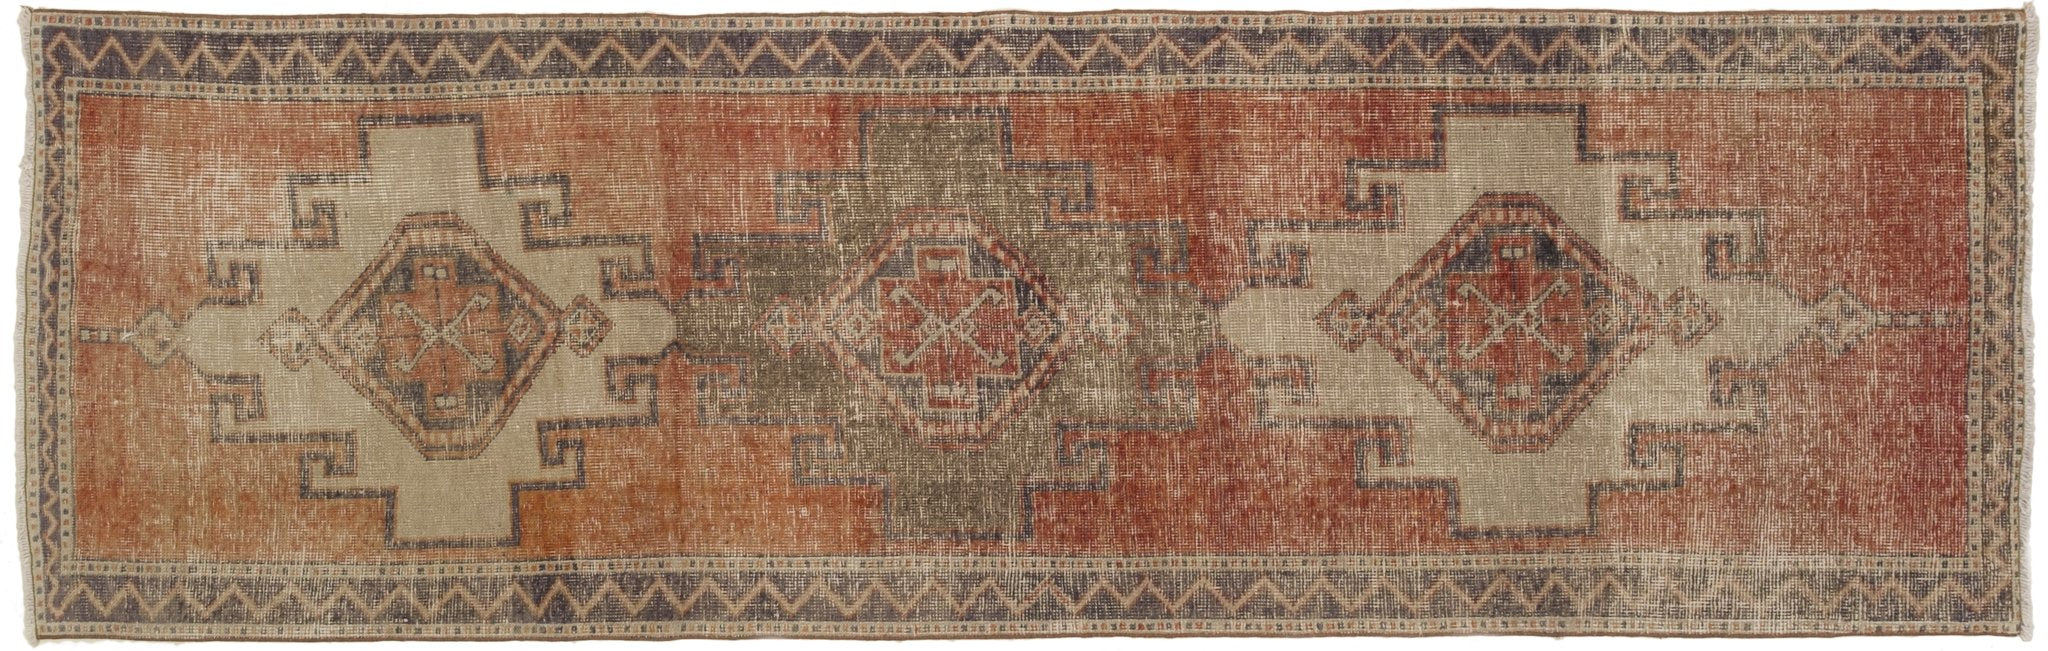 Vintage Turkish Runner Rug Armins